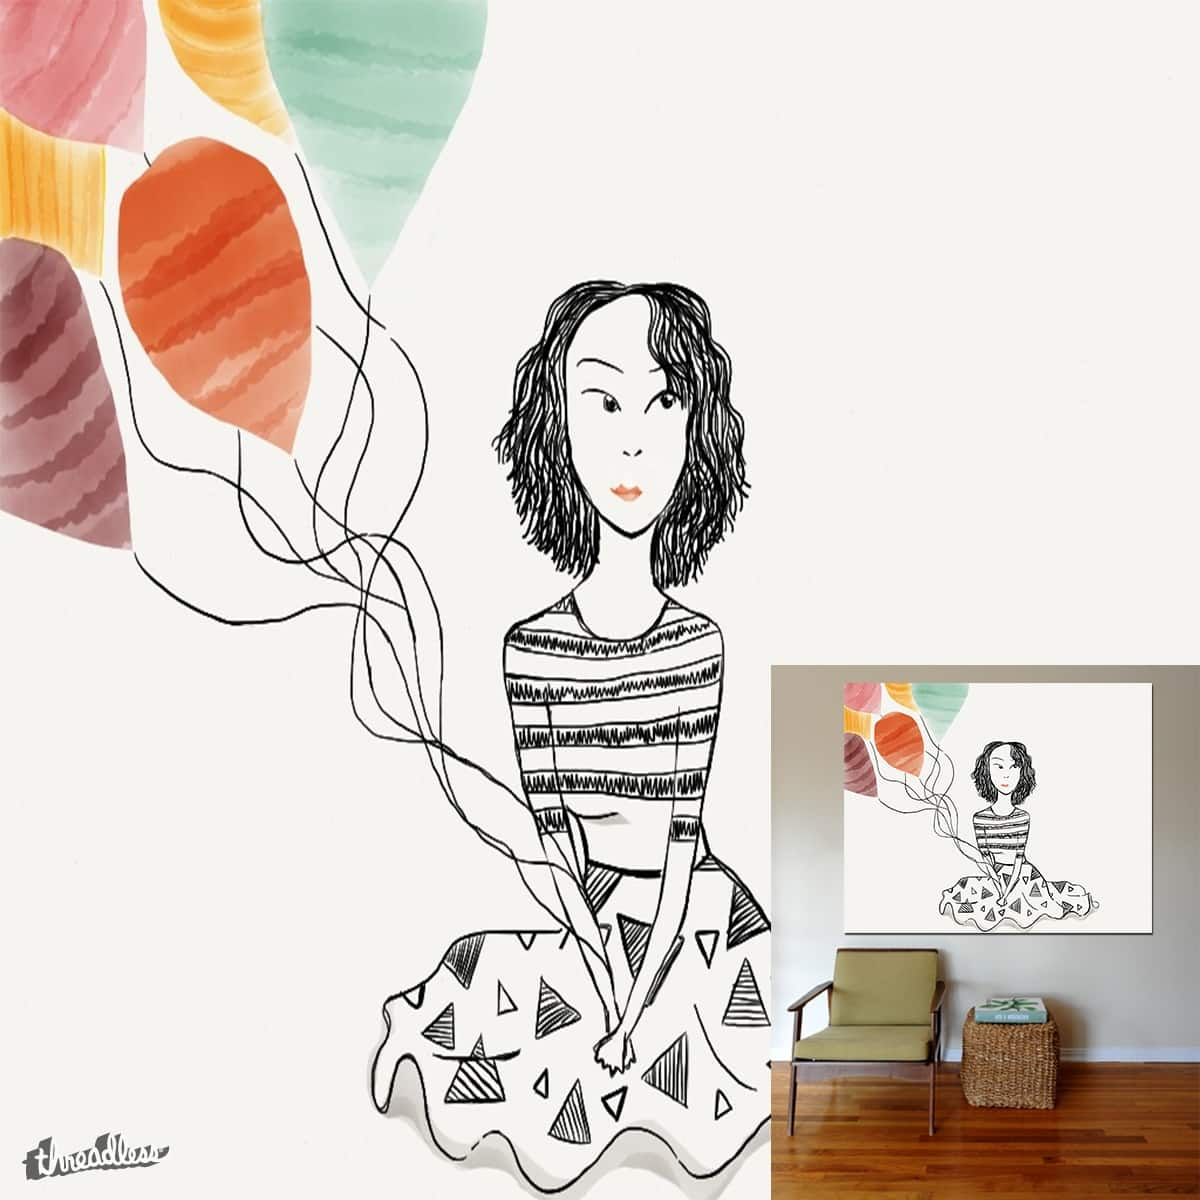 The Balloon Girl by morgan.janielle on Threadless